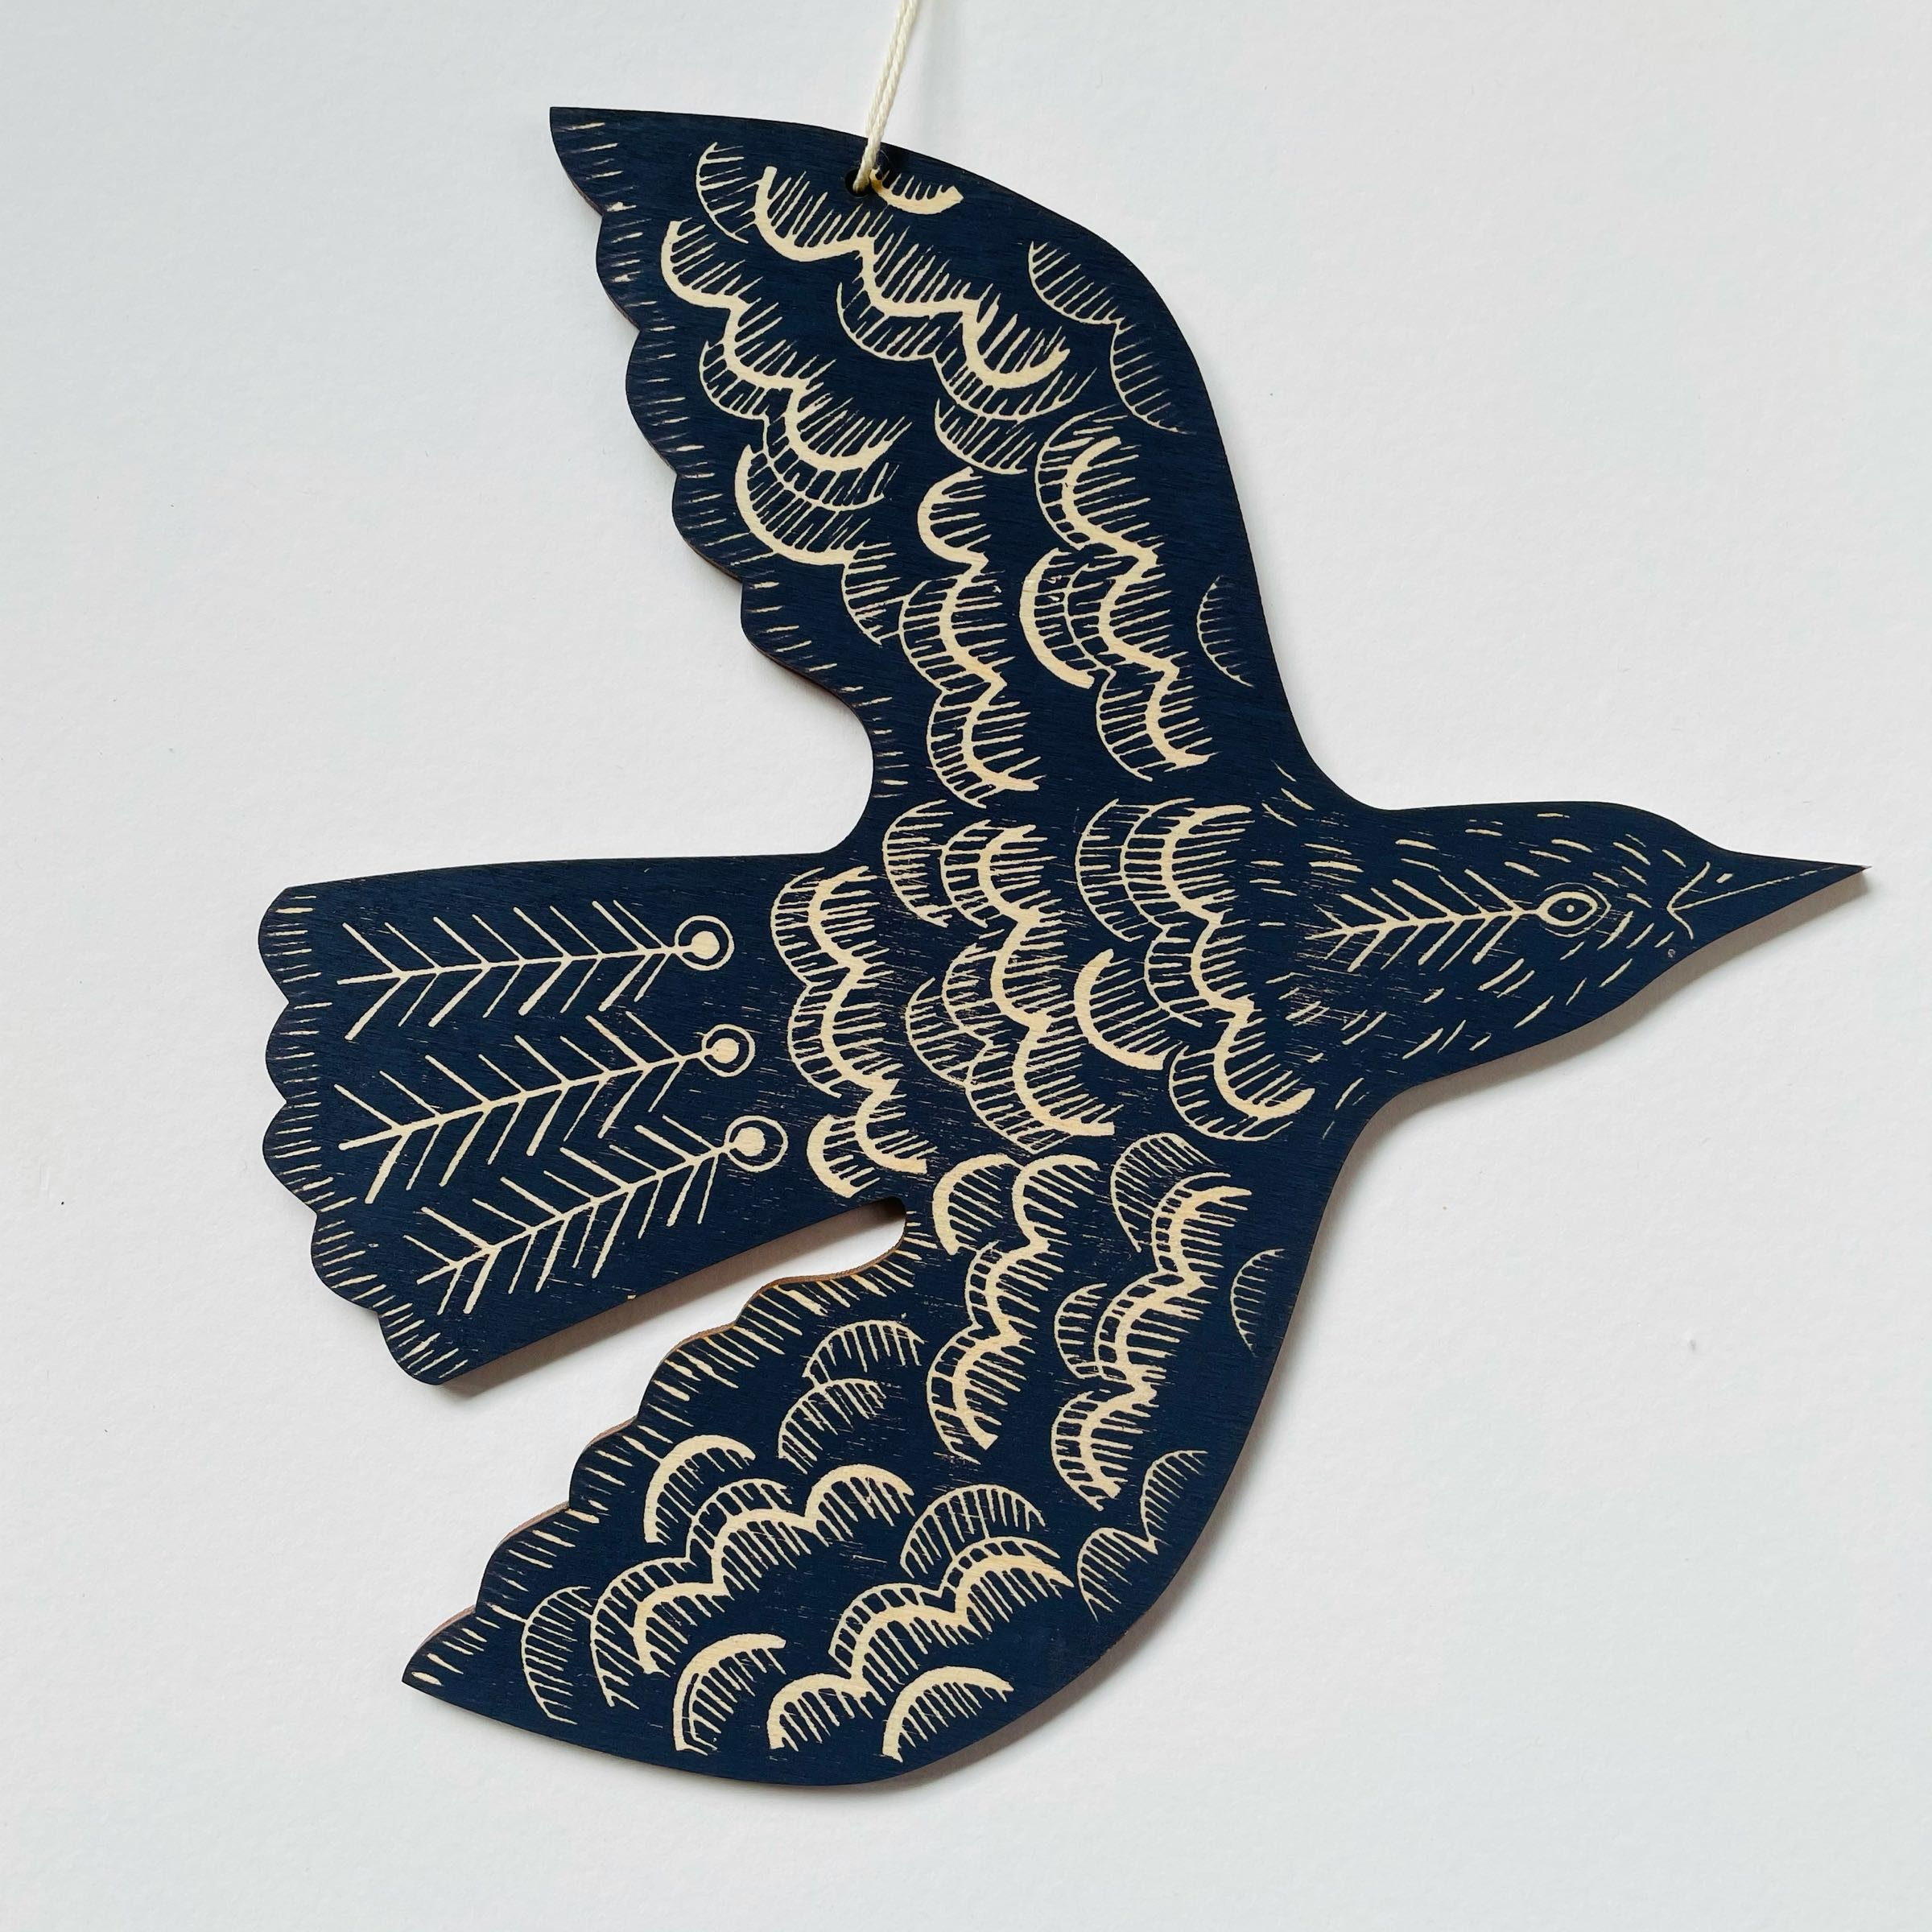 Blackbird hanging bird by Kate Millbank, brassica purple-grey